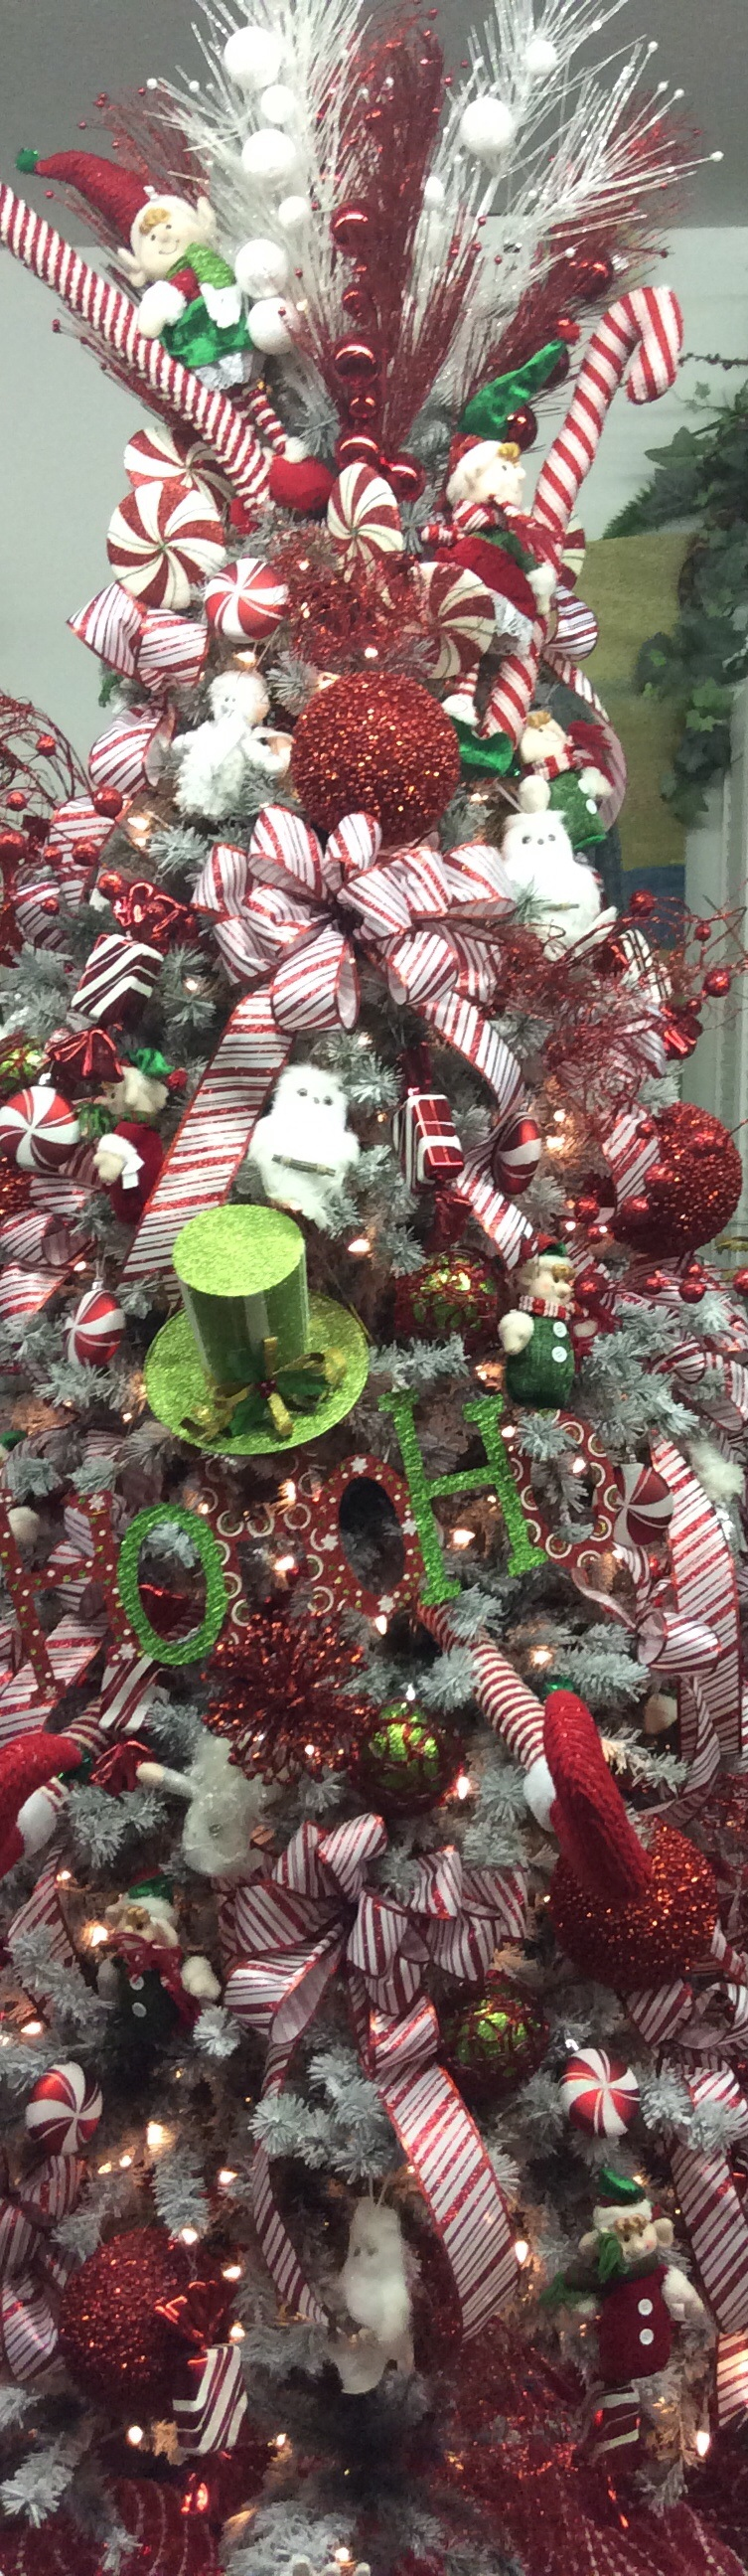 This candy cane ribbon and many other items on this tree available at tfloralsupply.com or call them at 606-639-9400 and get it shipped to you